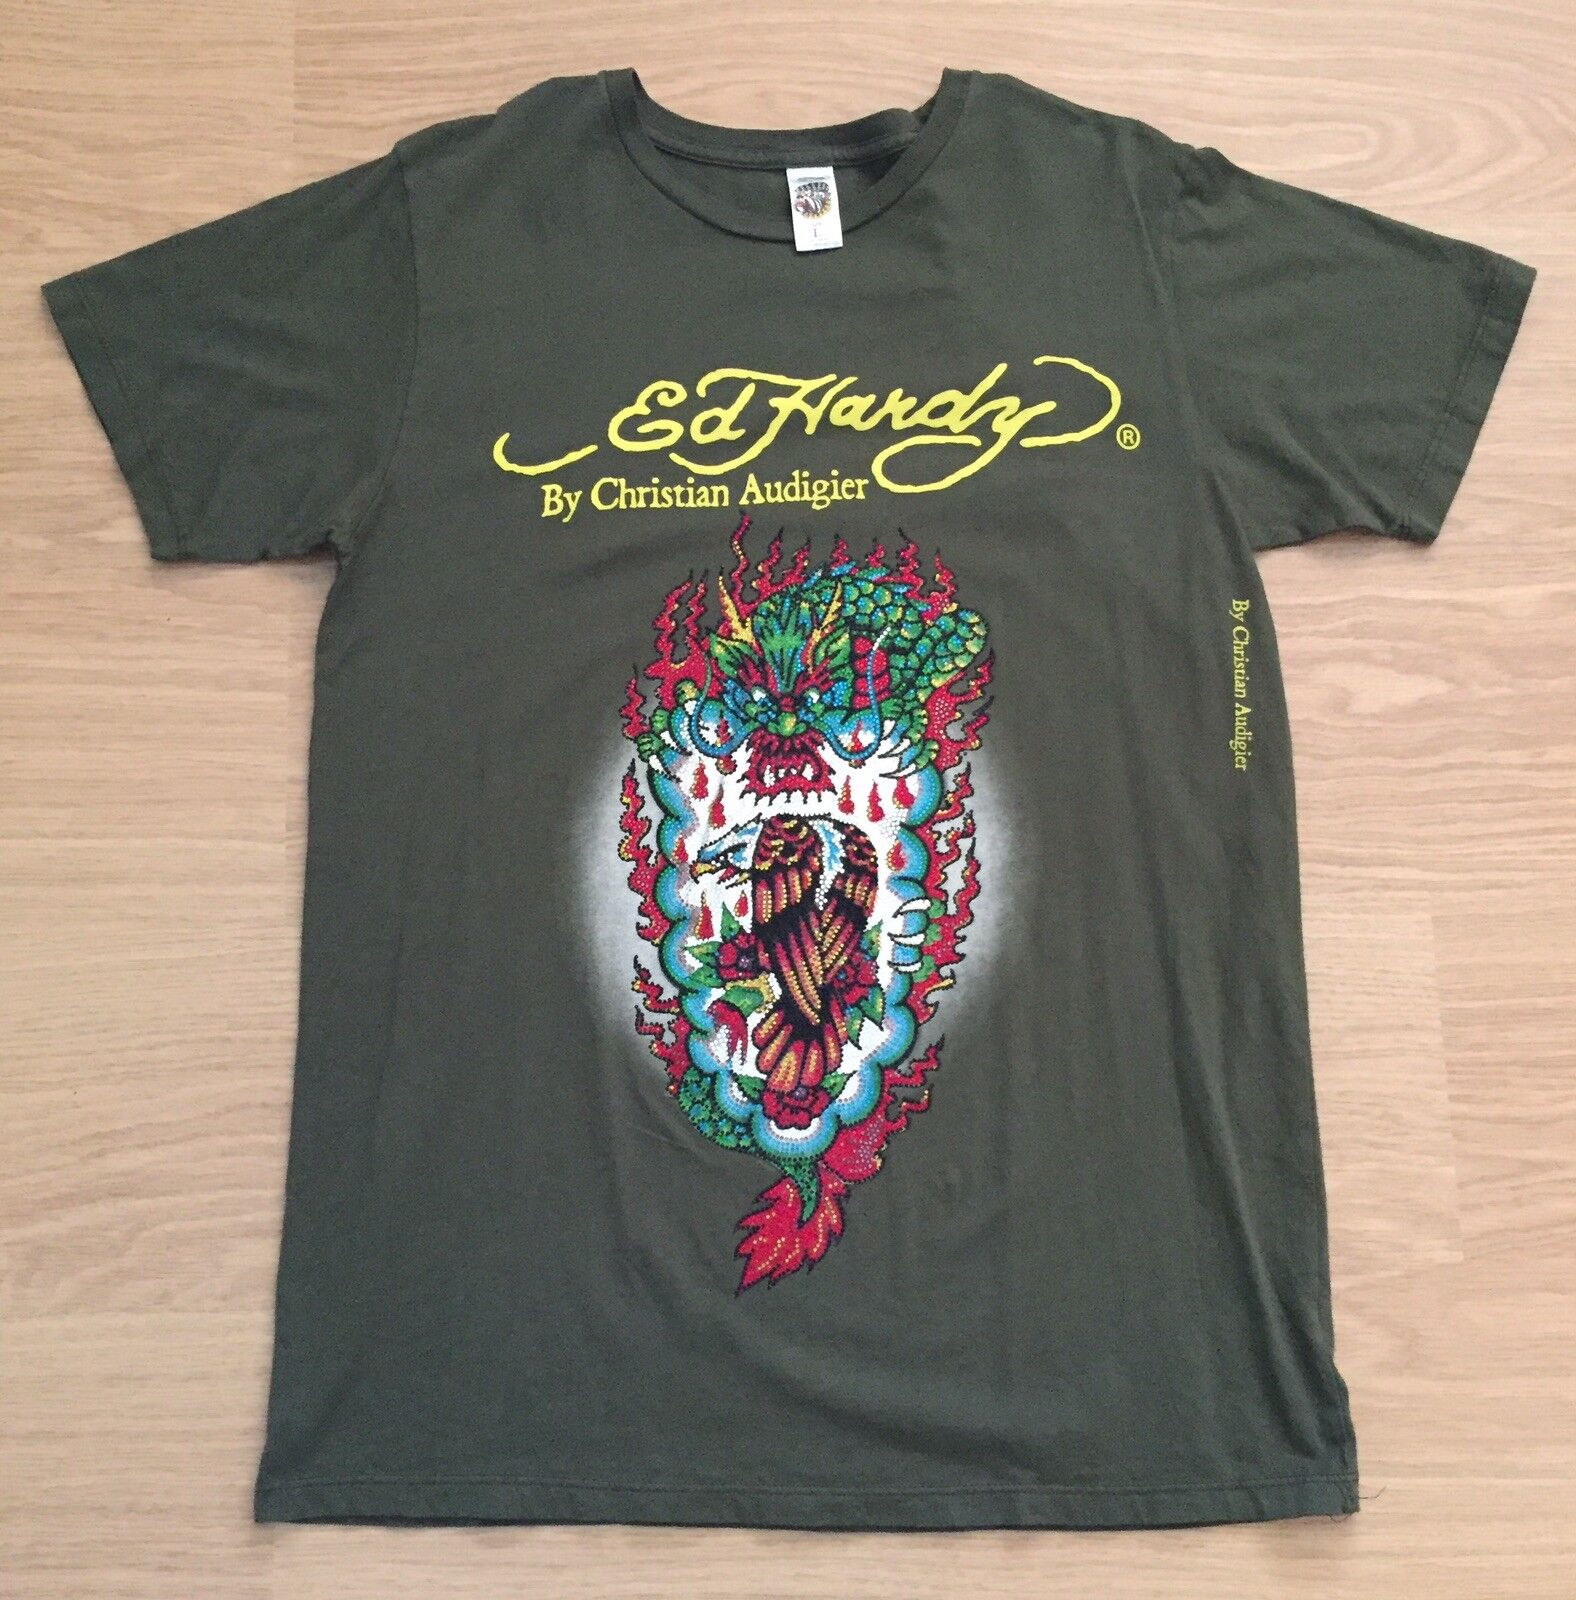 Brand New Men's Vintage Ed Hardy T-Shirt. Green. Large. RRP